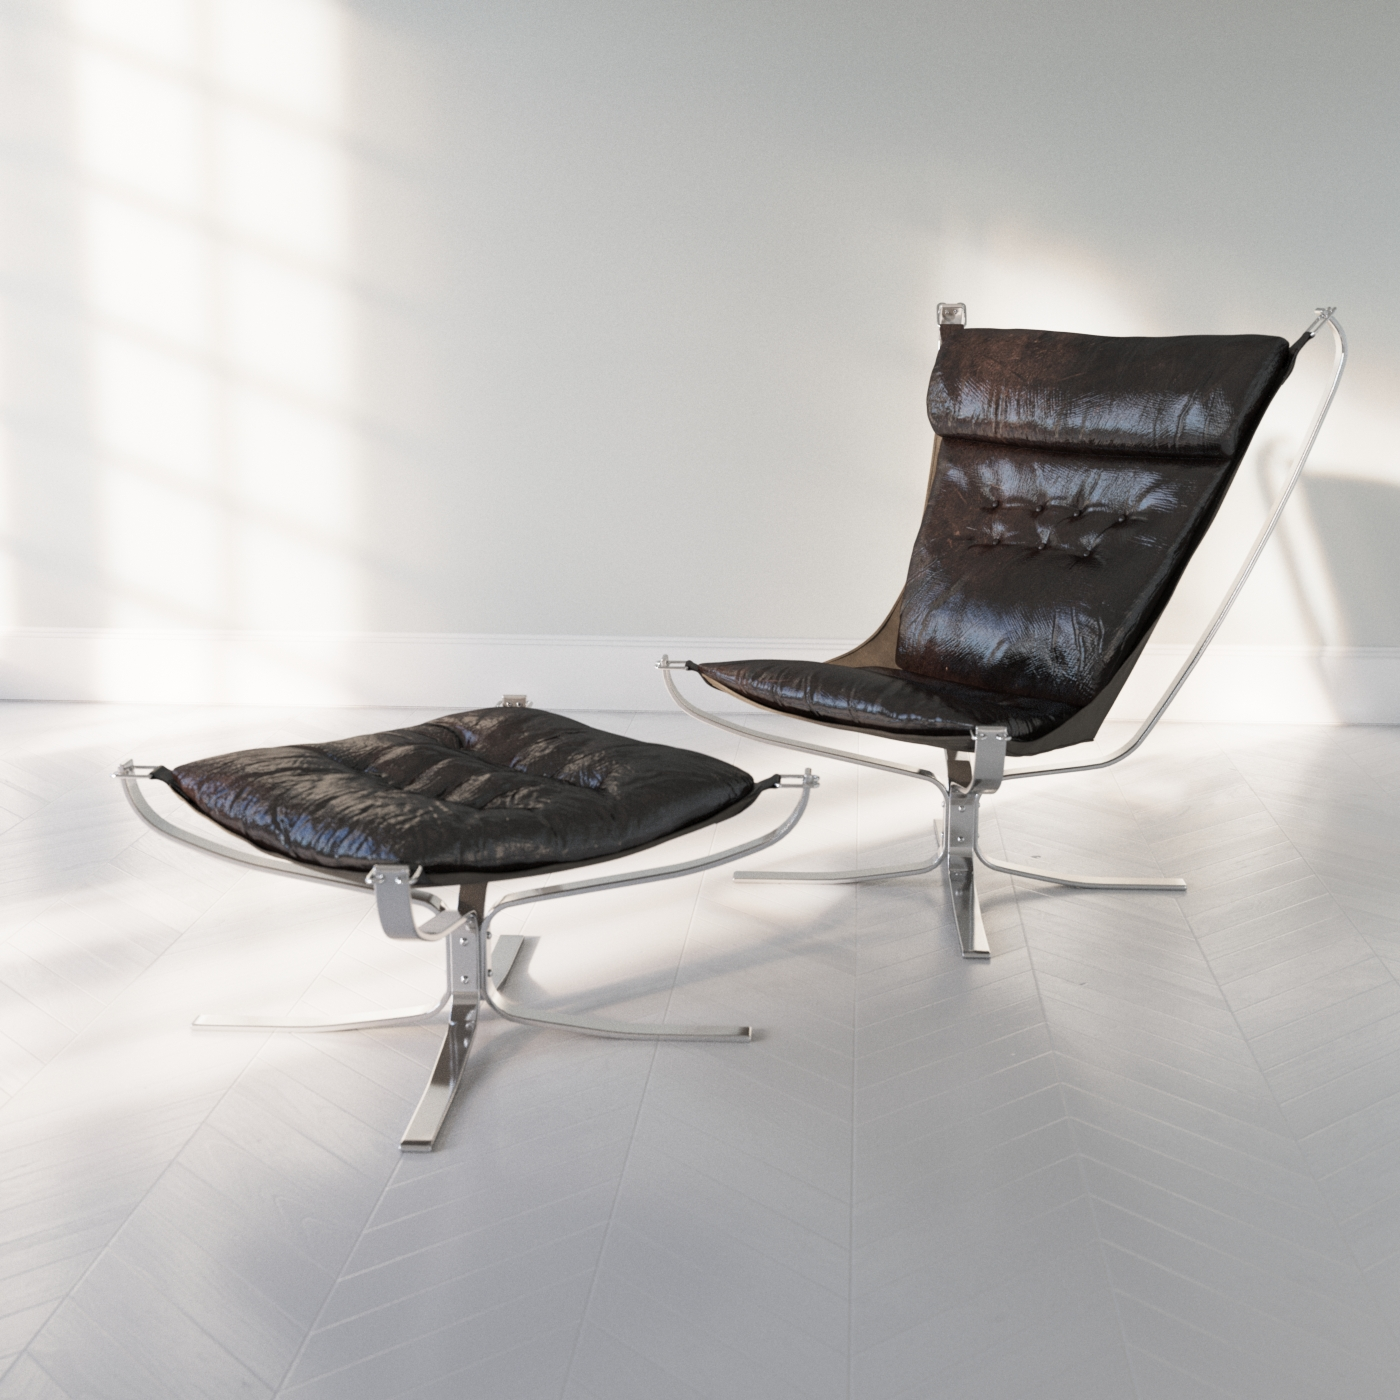 test render of a Sigurd Ressel Falcon chair using Corona A6